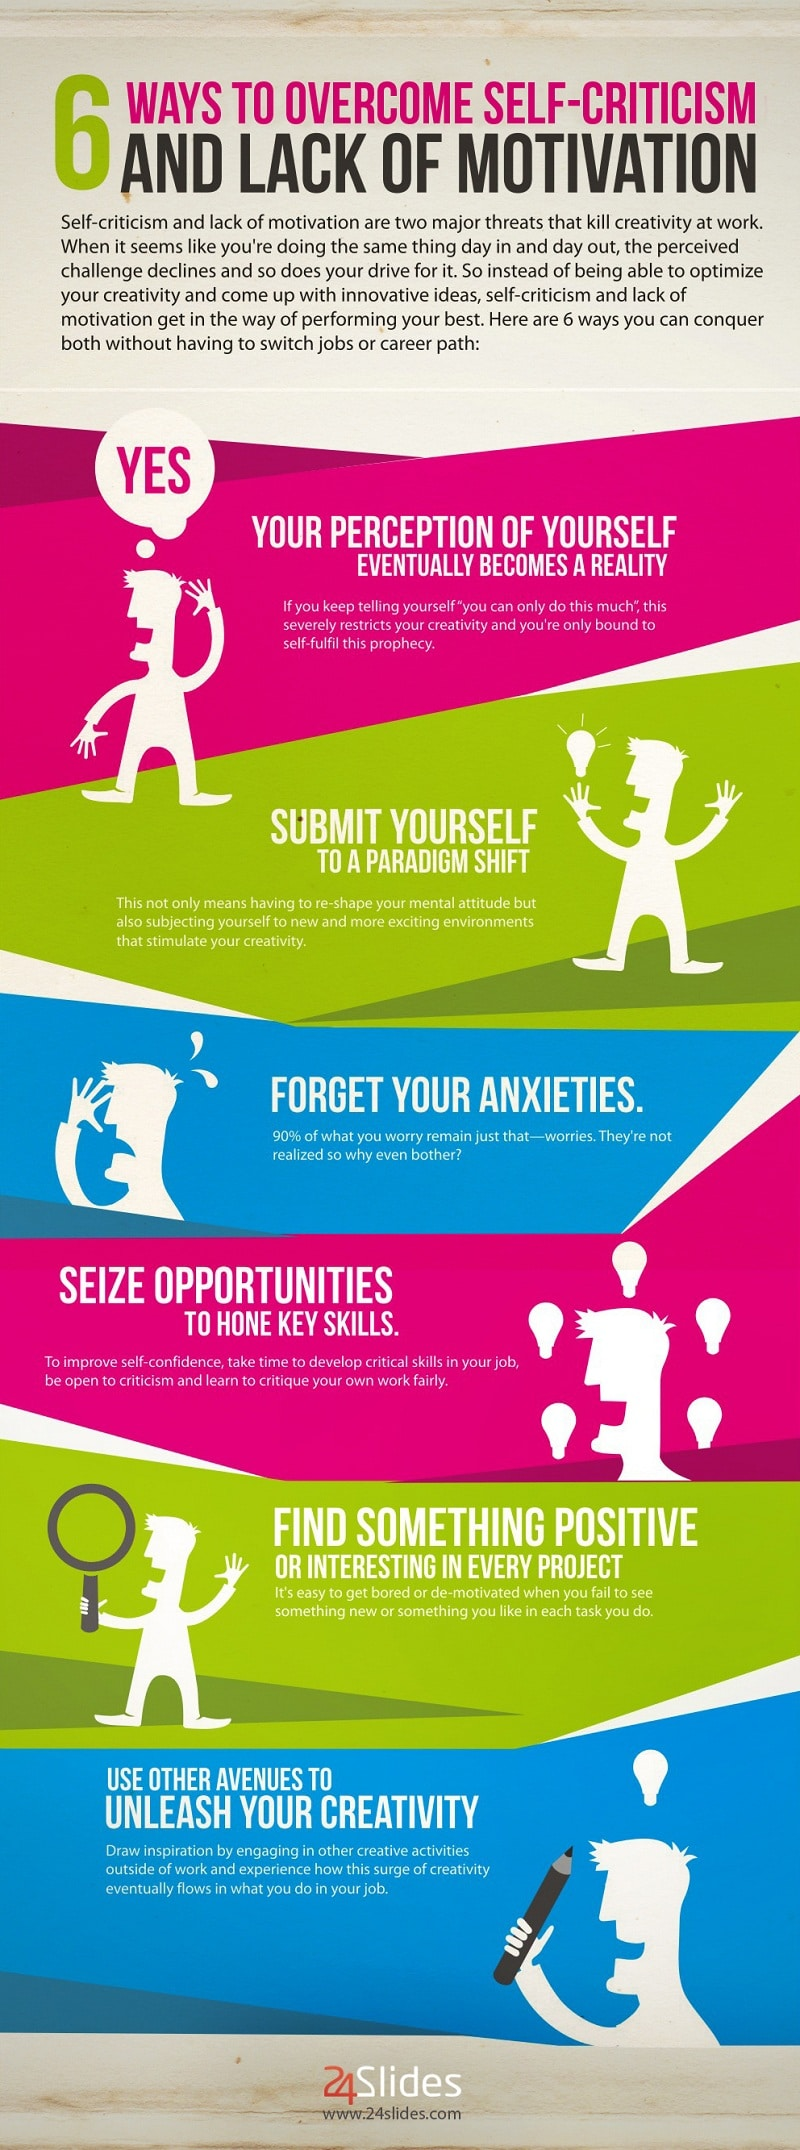 6 Ways To Overcome Self-Criticism & Lack Of Motivation [Infographic]